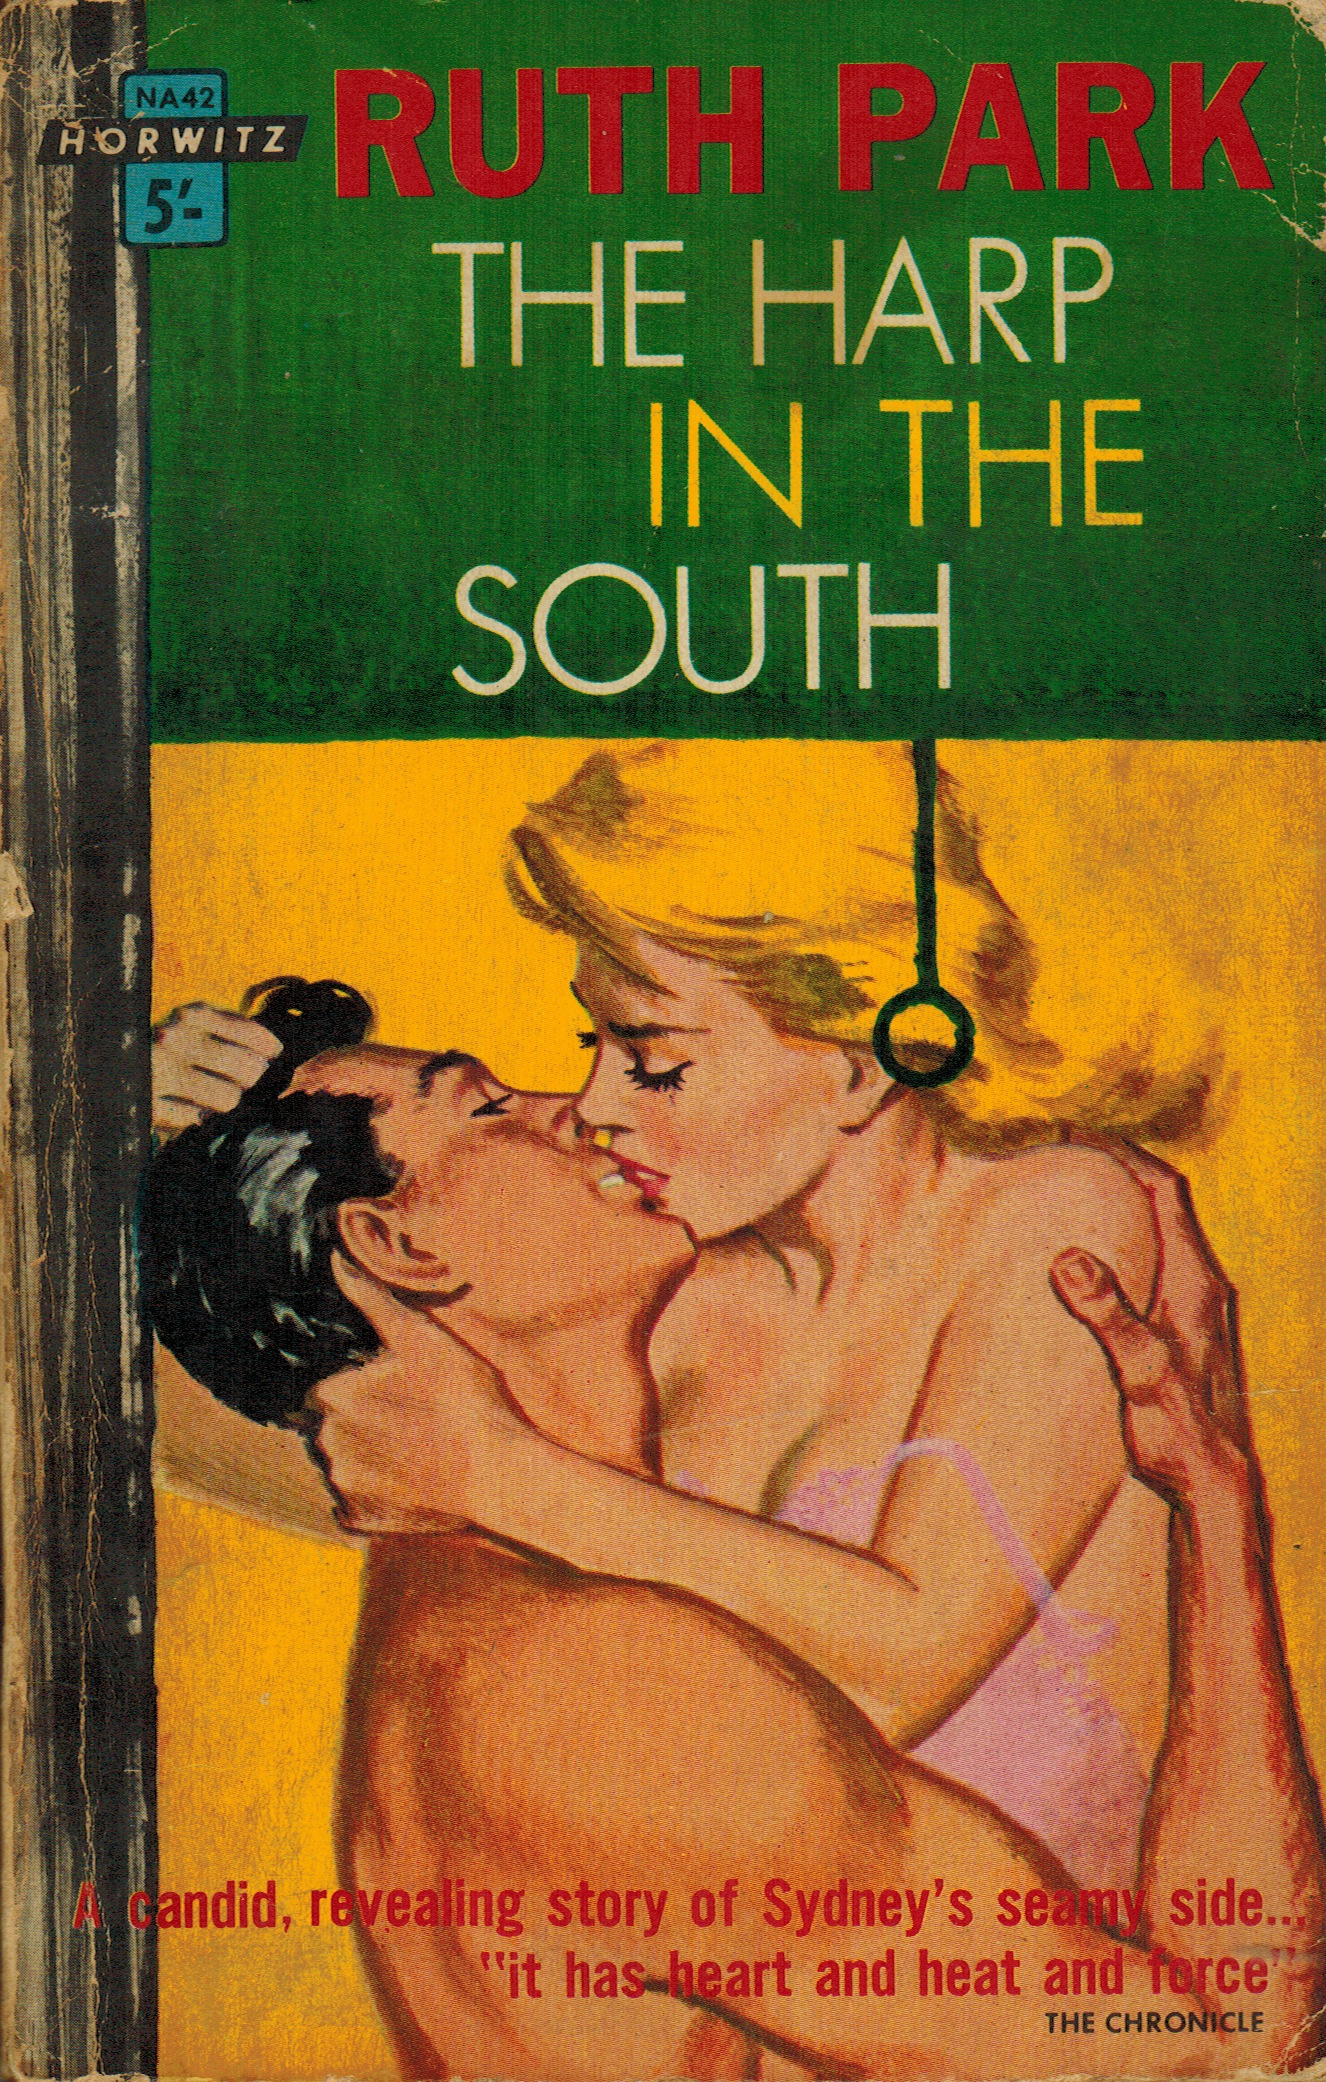 Book cover: Horwitz's edition of The Harp in the South by Ruth Park